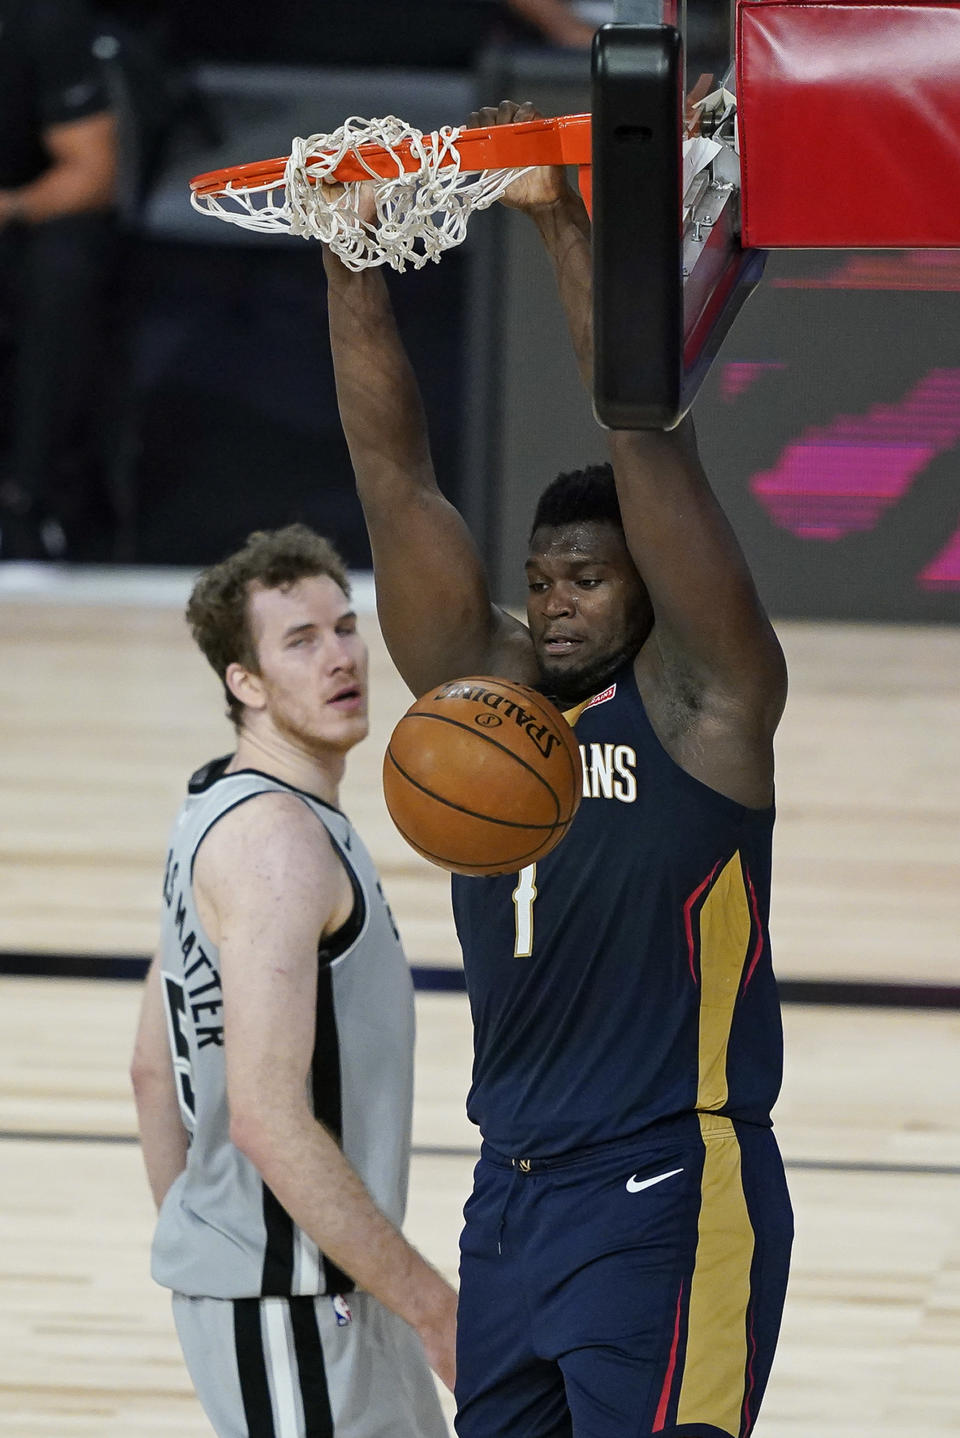 New Orleans Pelicans forward Zion Williamson, right, dunks the ball in front of San Antonio Spurs center Jakob Poeltl during the second half of an NBA basketball game, Sunday, Aug. 9, 2020, in Lake Buena Vista, Fla. (AP Photo/Ashley Landis, Pool)